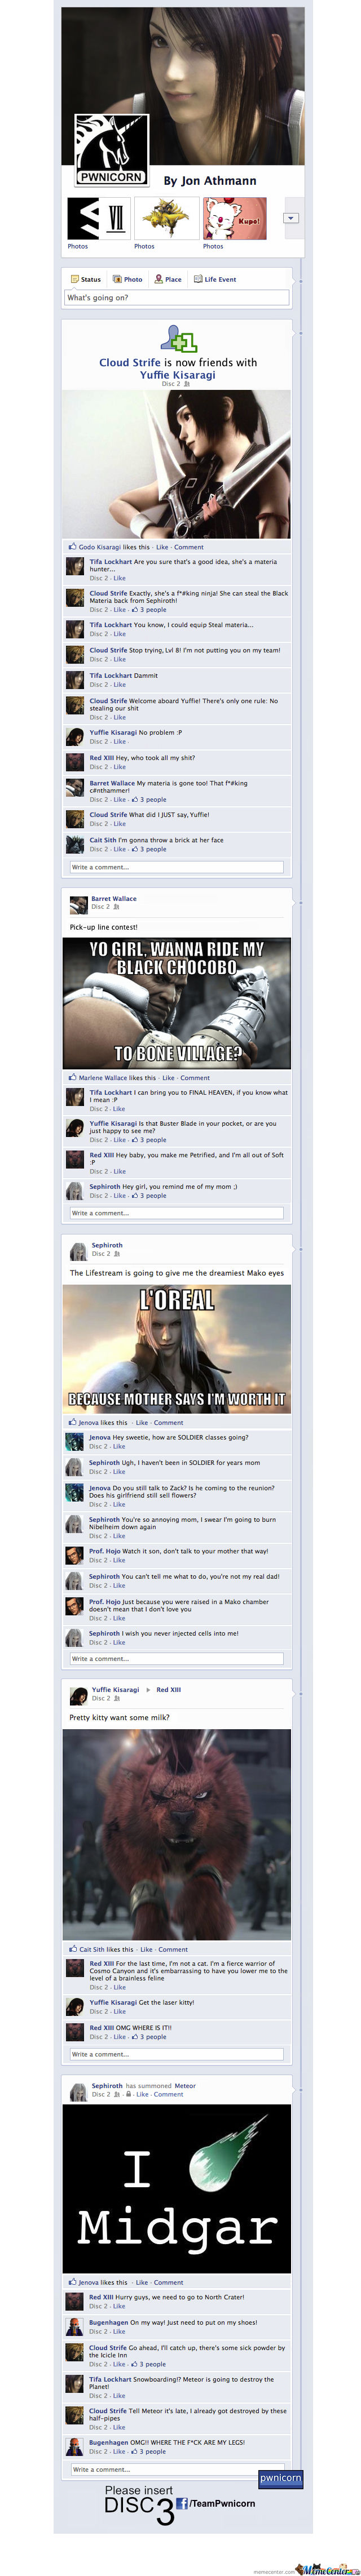 Final Fantasy On Facebook (Disc 2)